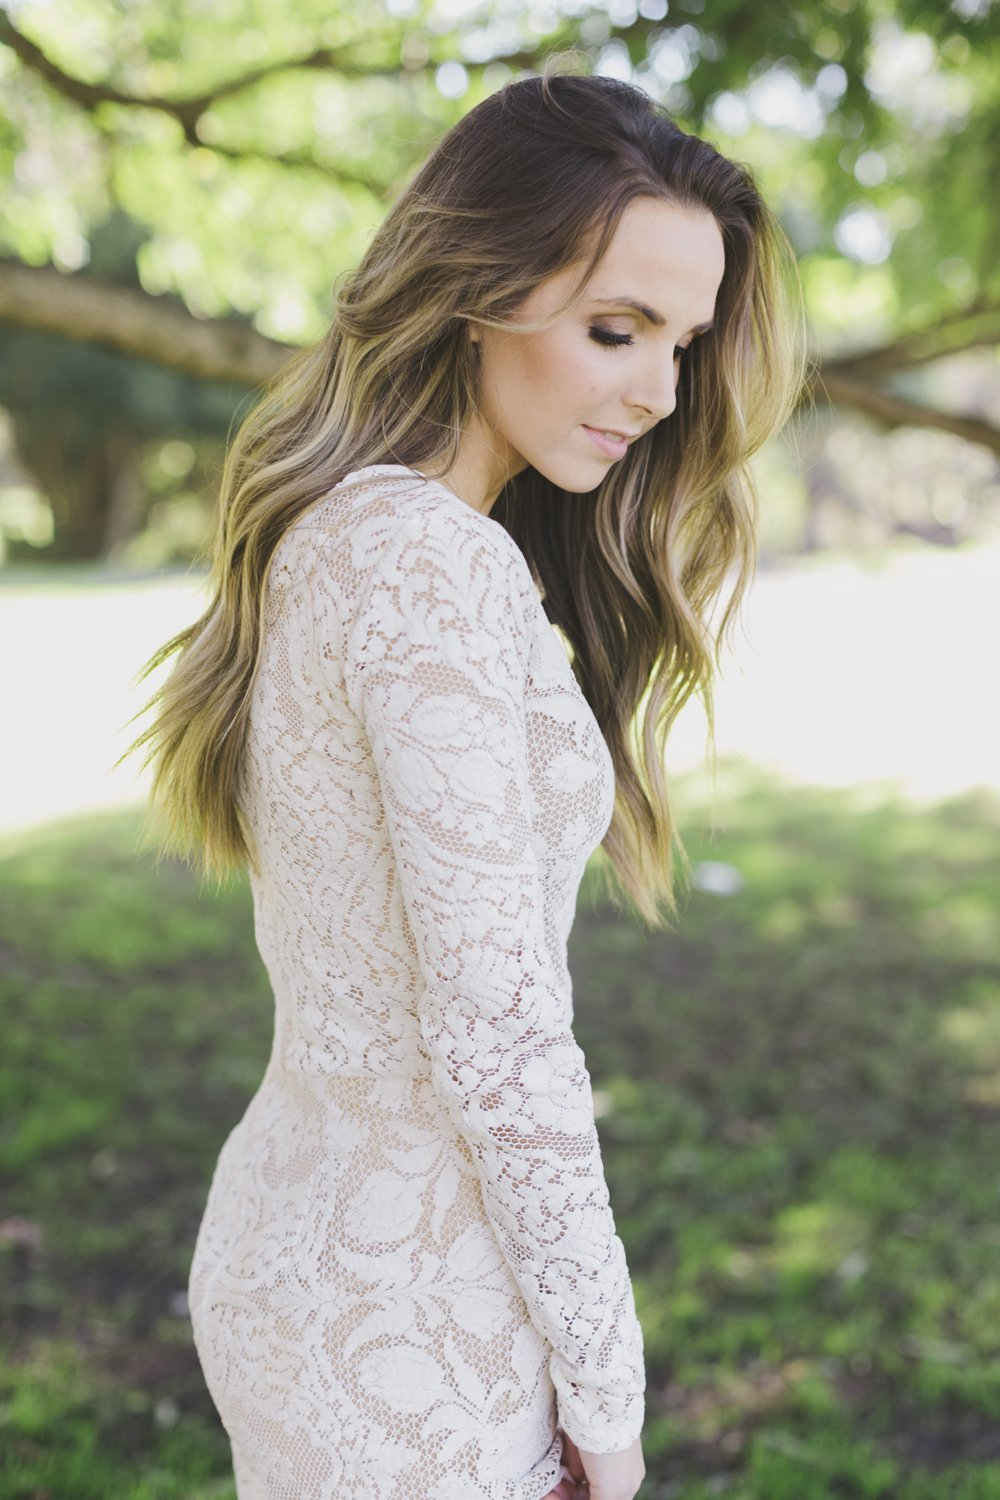 Merrick's Art Lace Dress